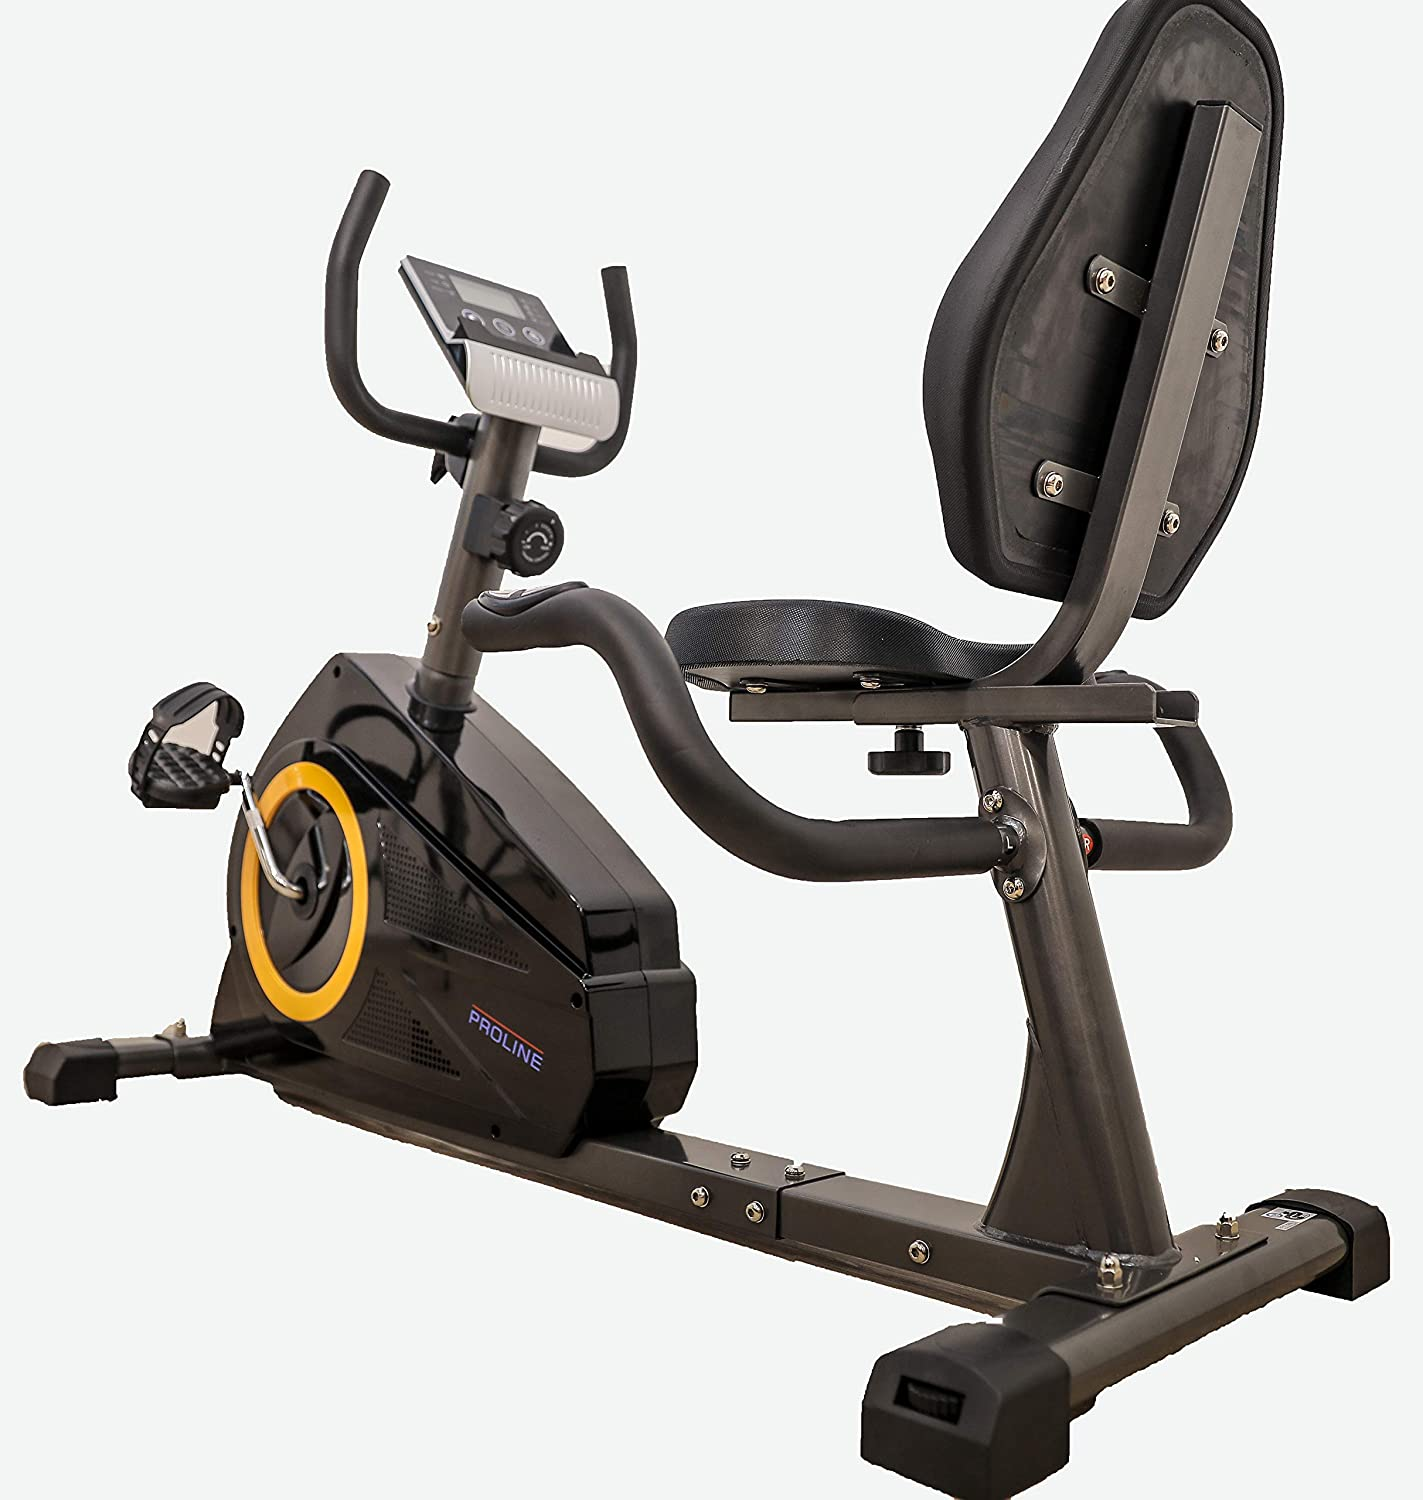 Proline Fitness 335L Fitness Recumbent Bike for Exercise with 5kg Fly Wheel Weight